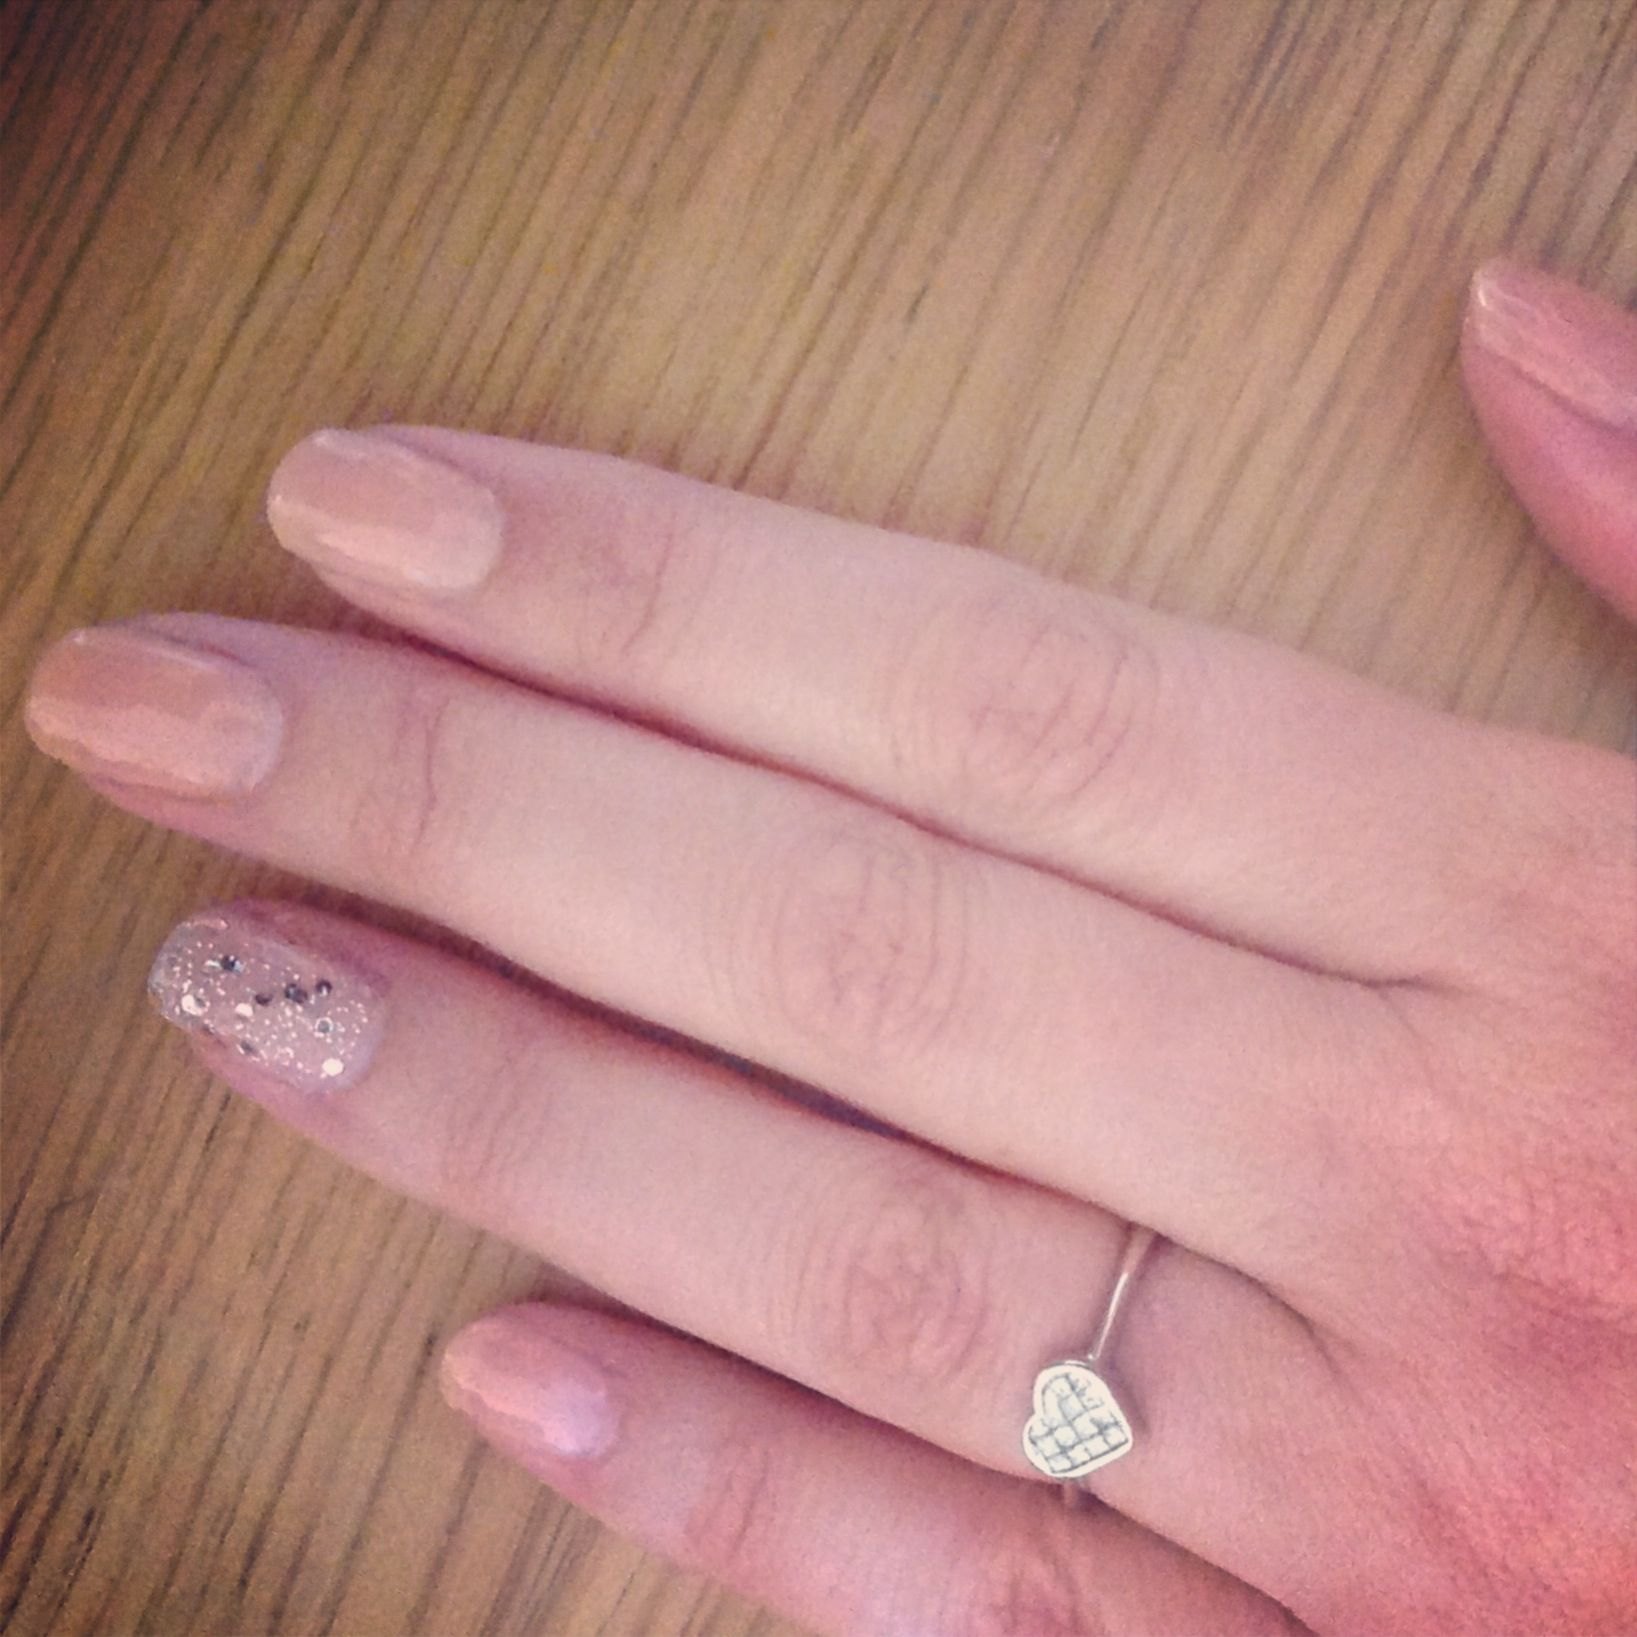 Shellac Nude Knickers with sparkle nail